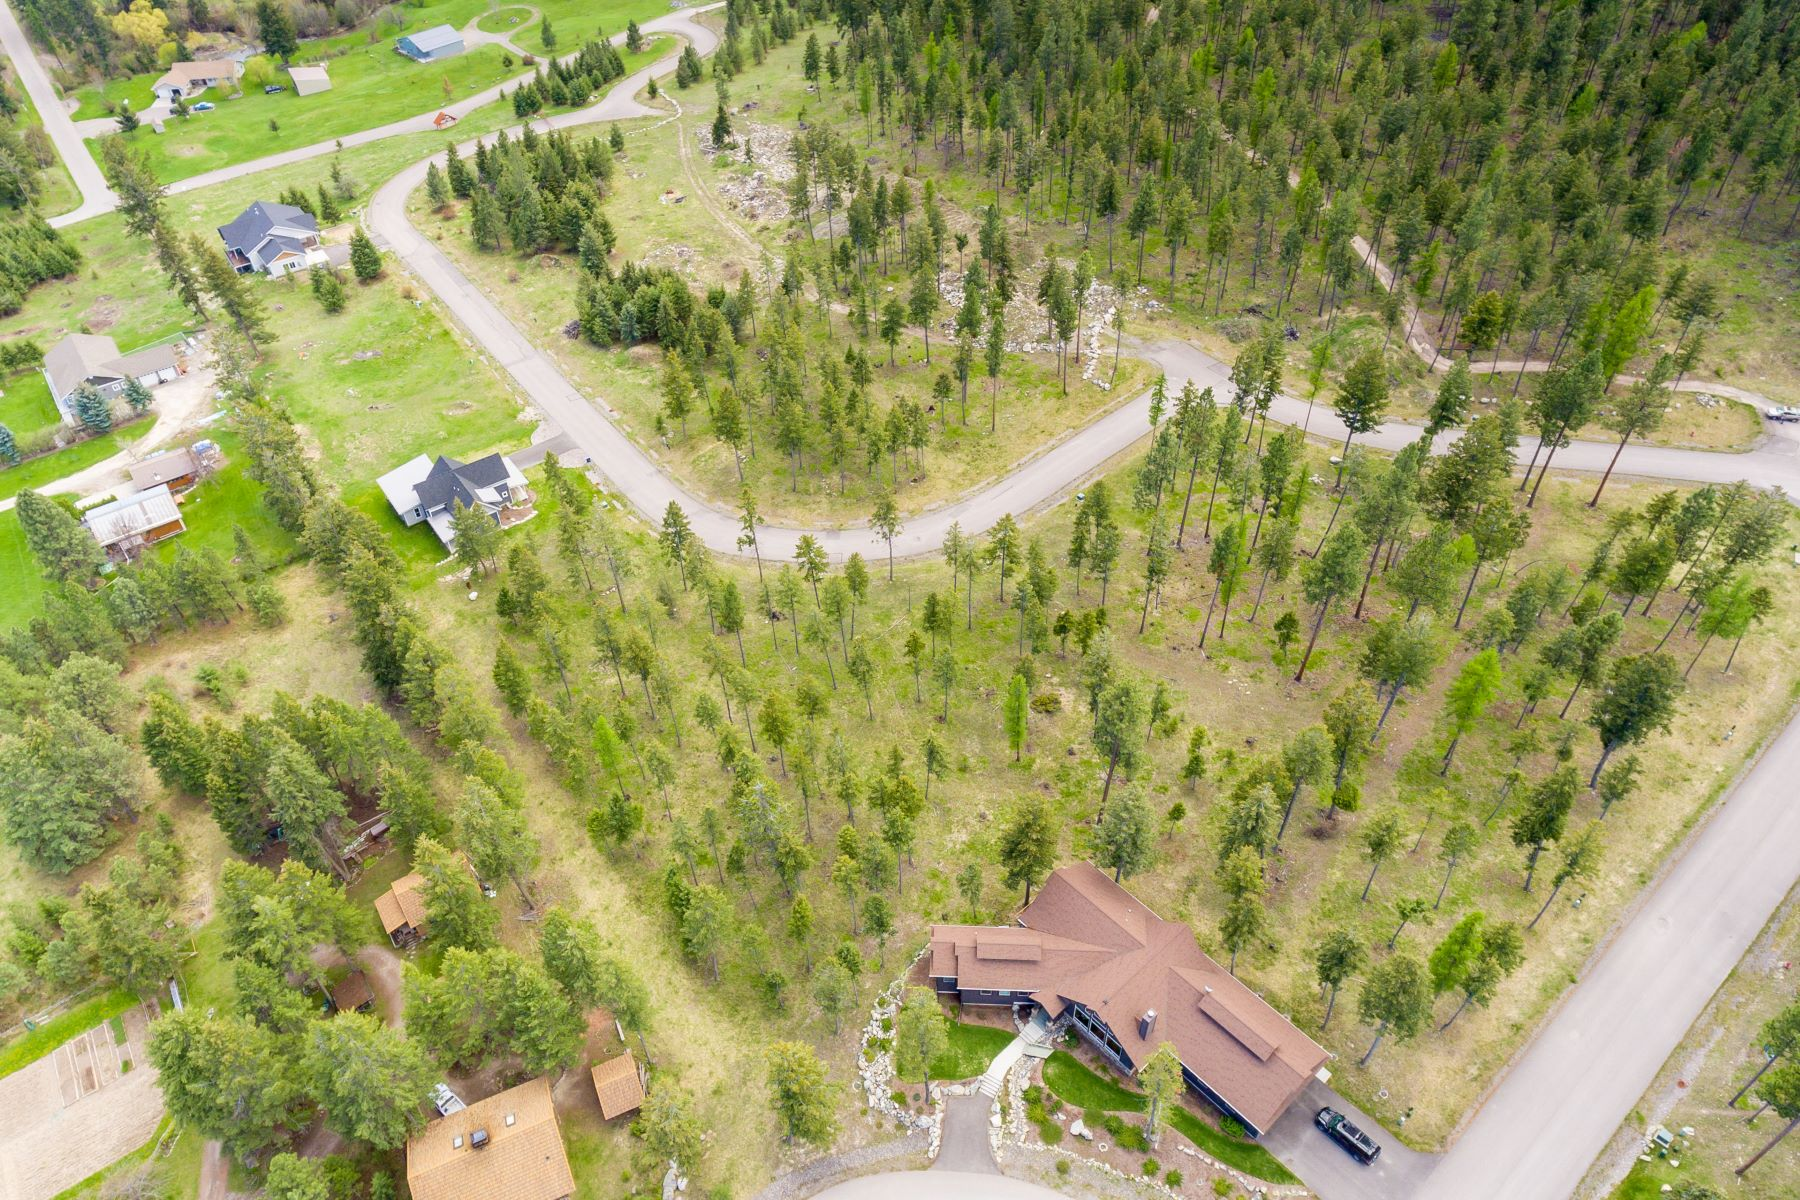 Land for Sale at 268 Spurwing Loop , Lakeside, MT 59922 268 Spurwing Loop Lakeside, Montana 59922 United States